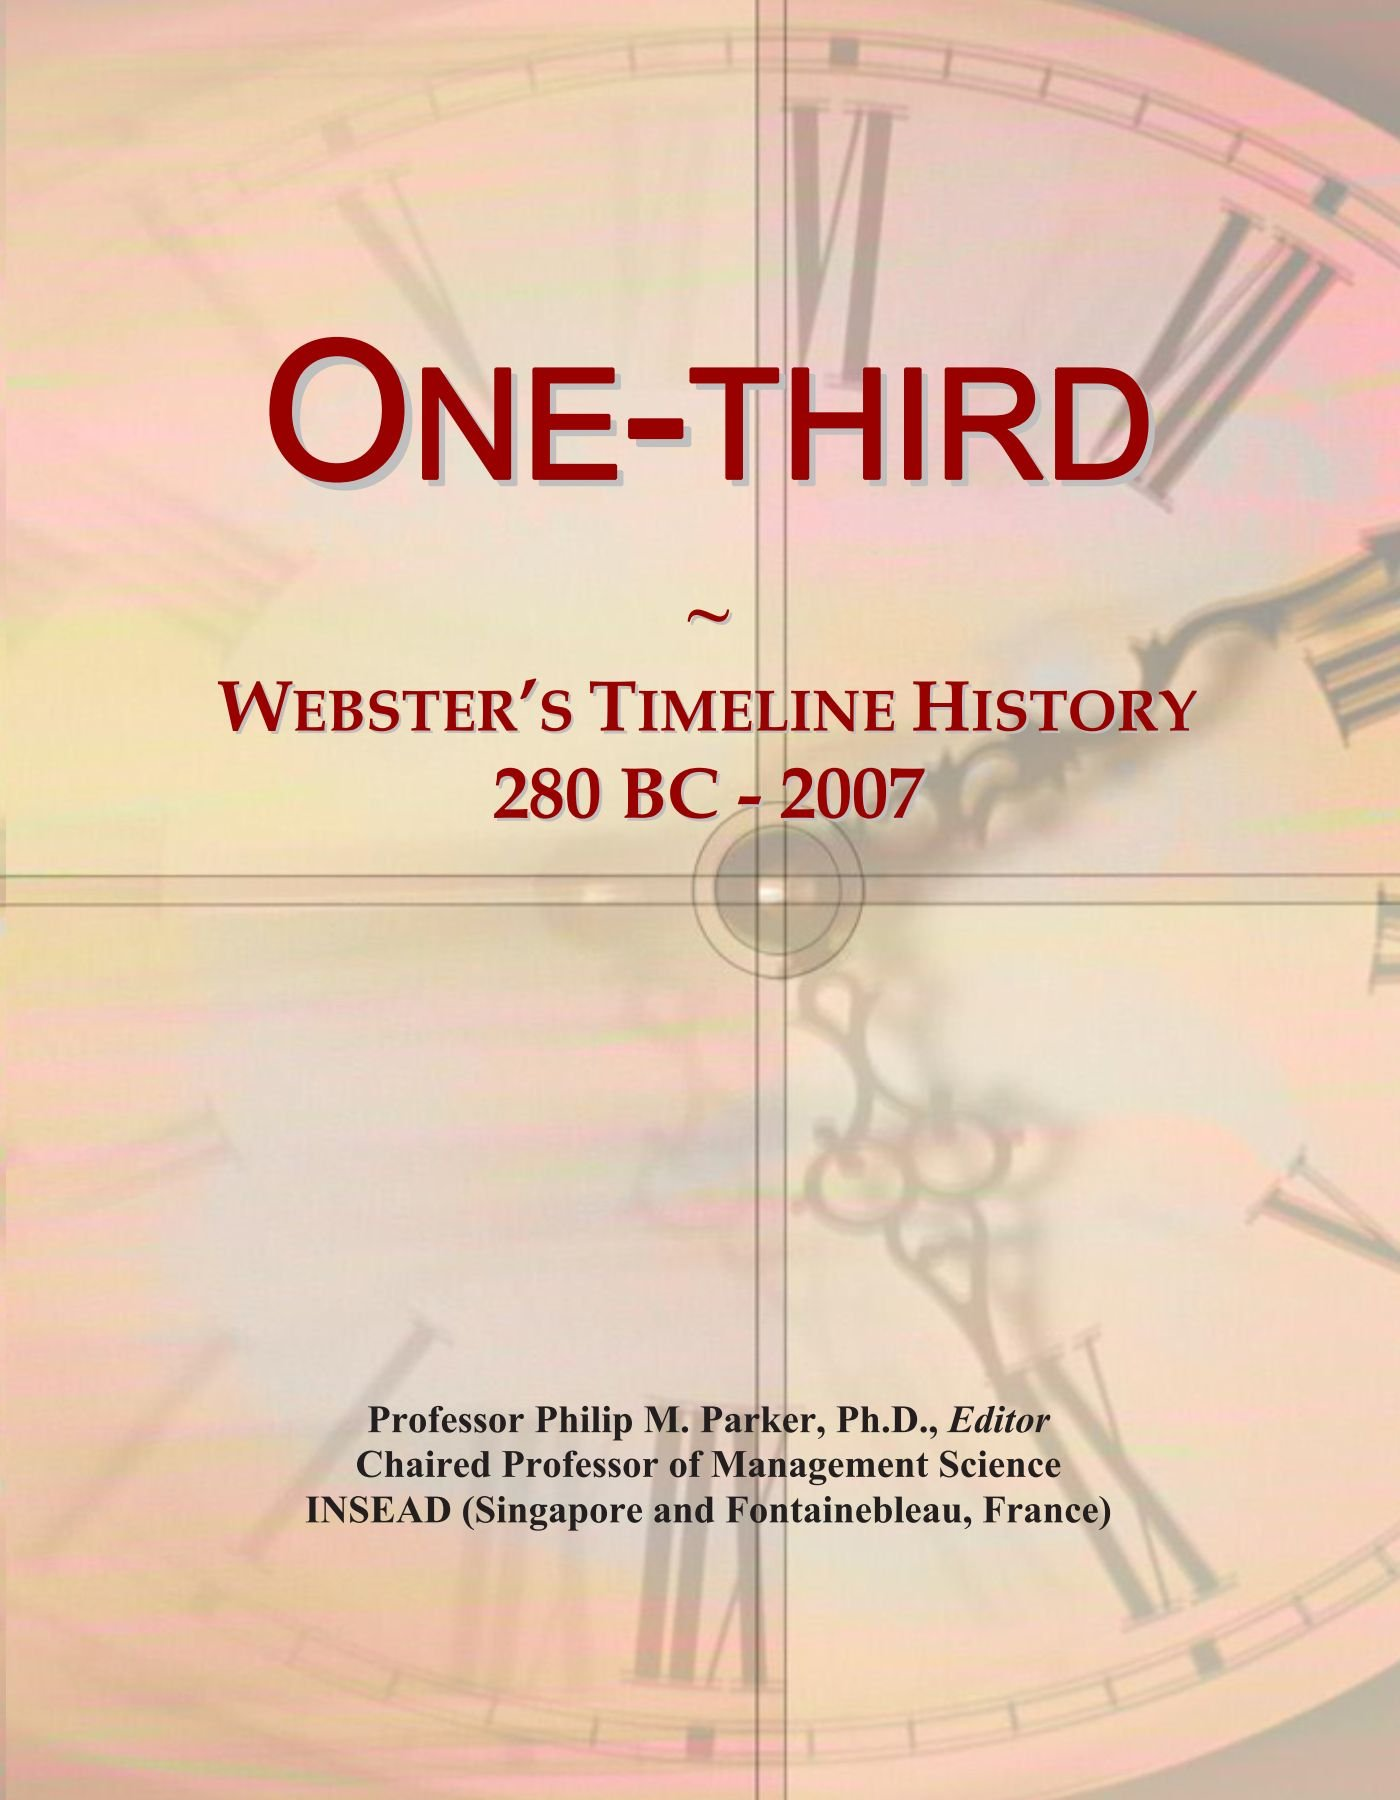 One-third: Webster's Timeline History, 280 BC - 2007 PDF